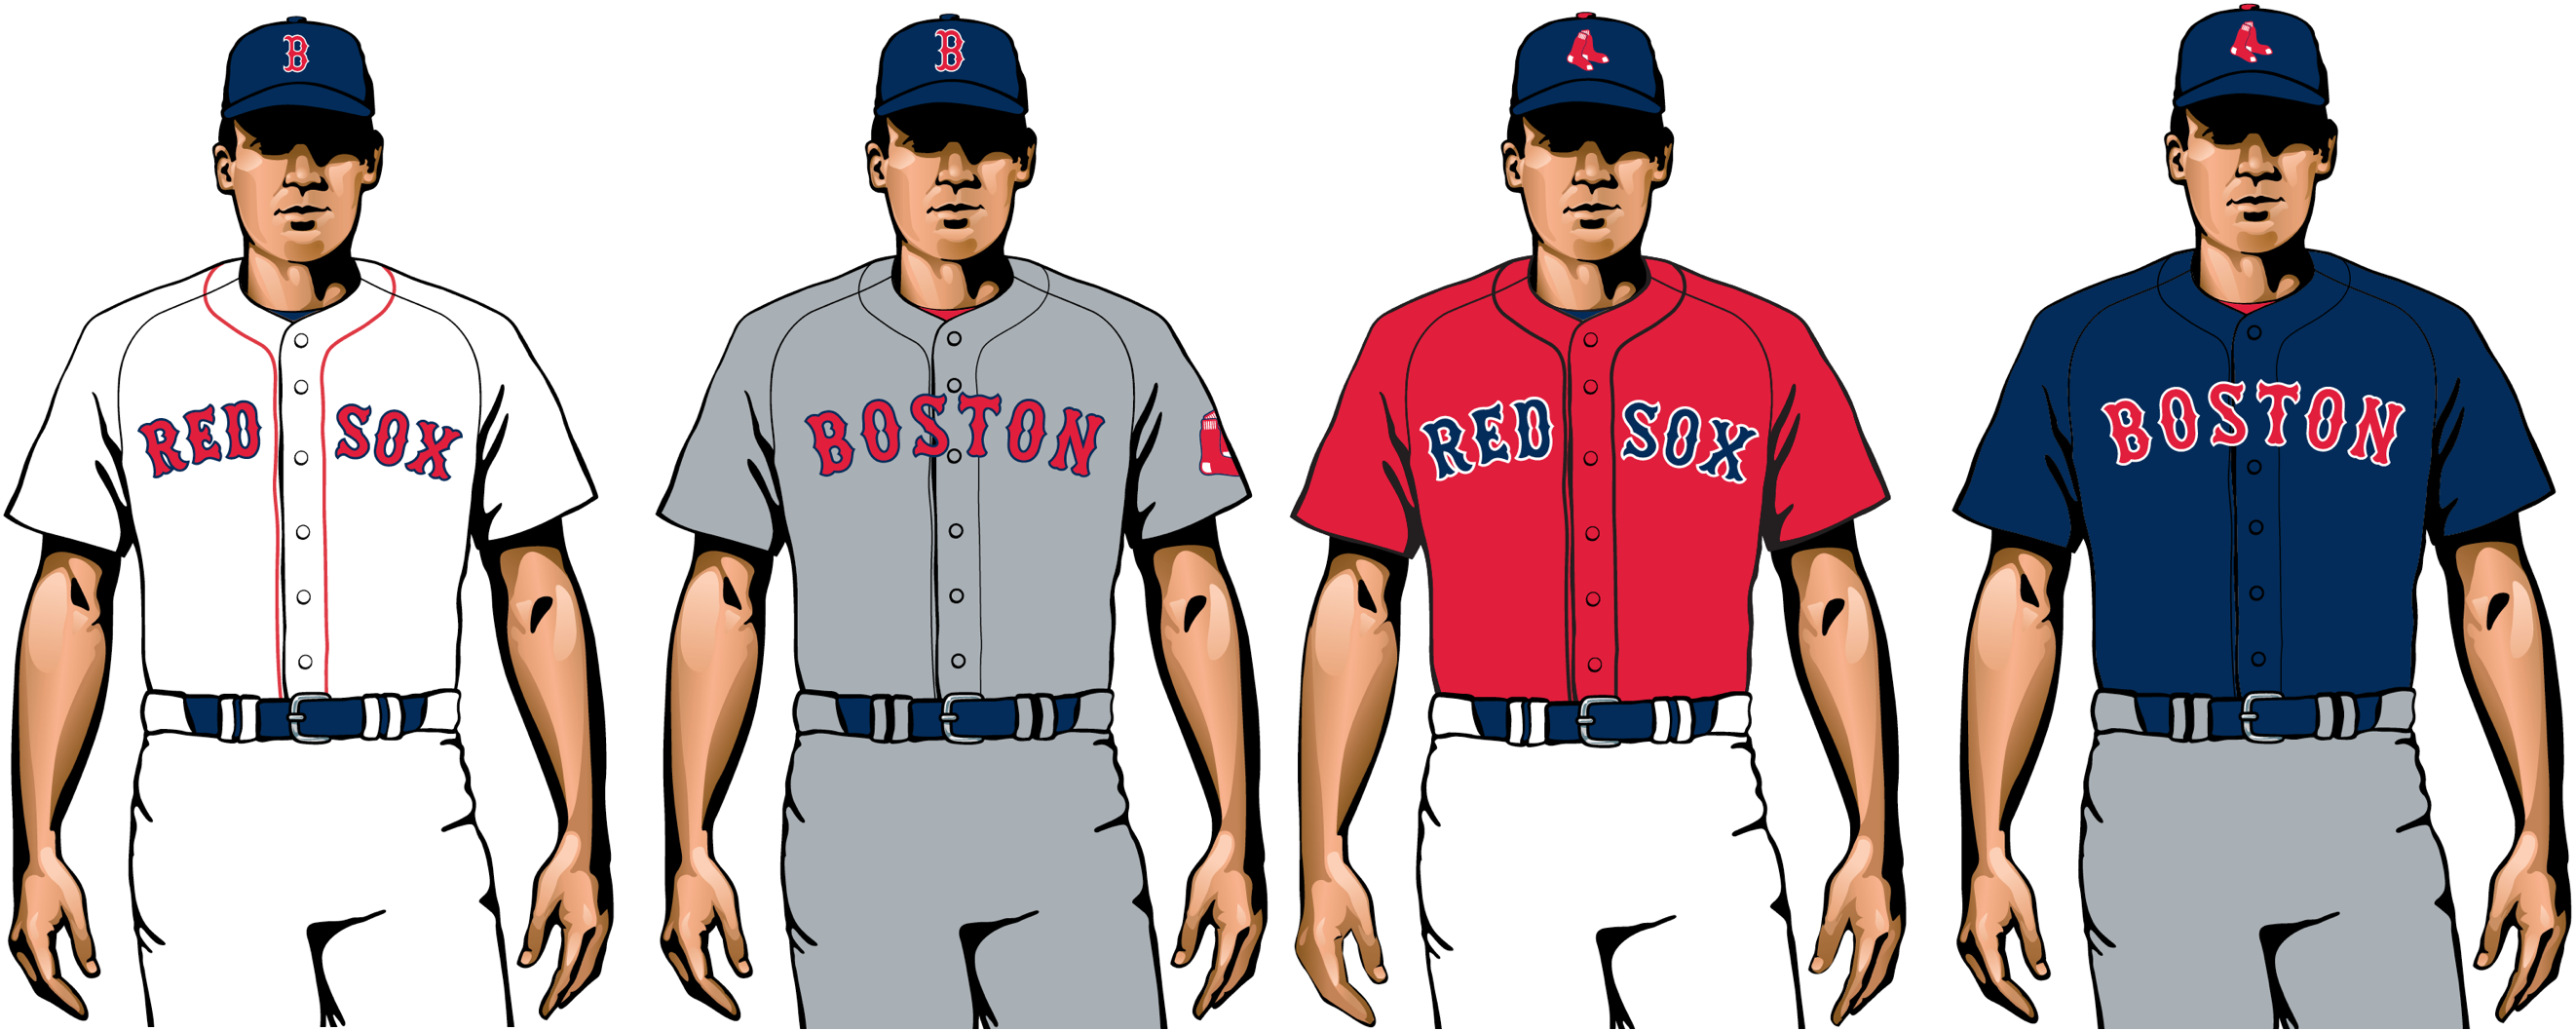 boston red sox 2020 uniforms